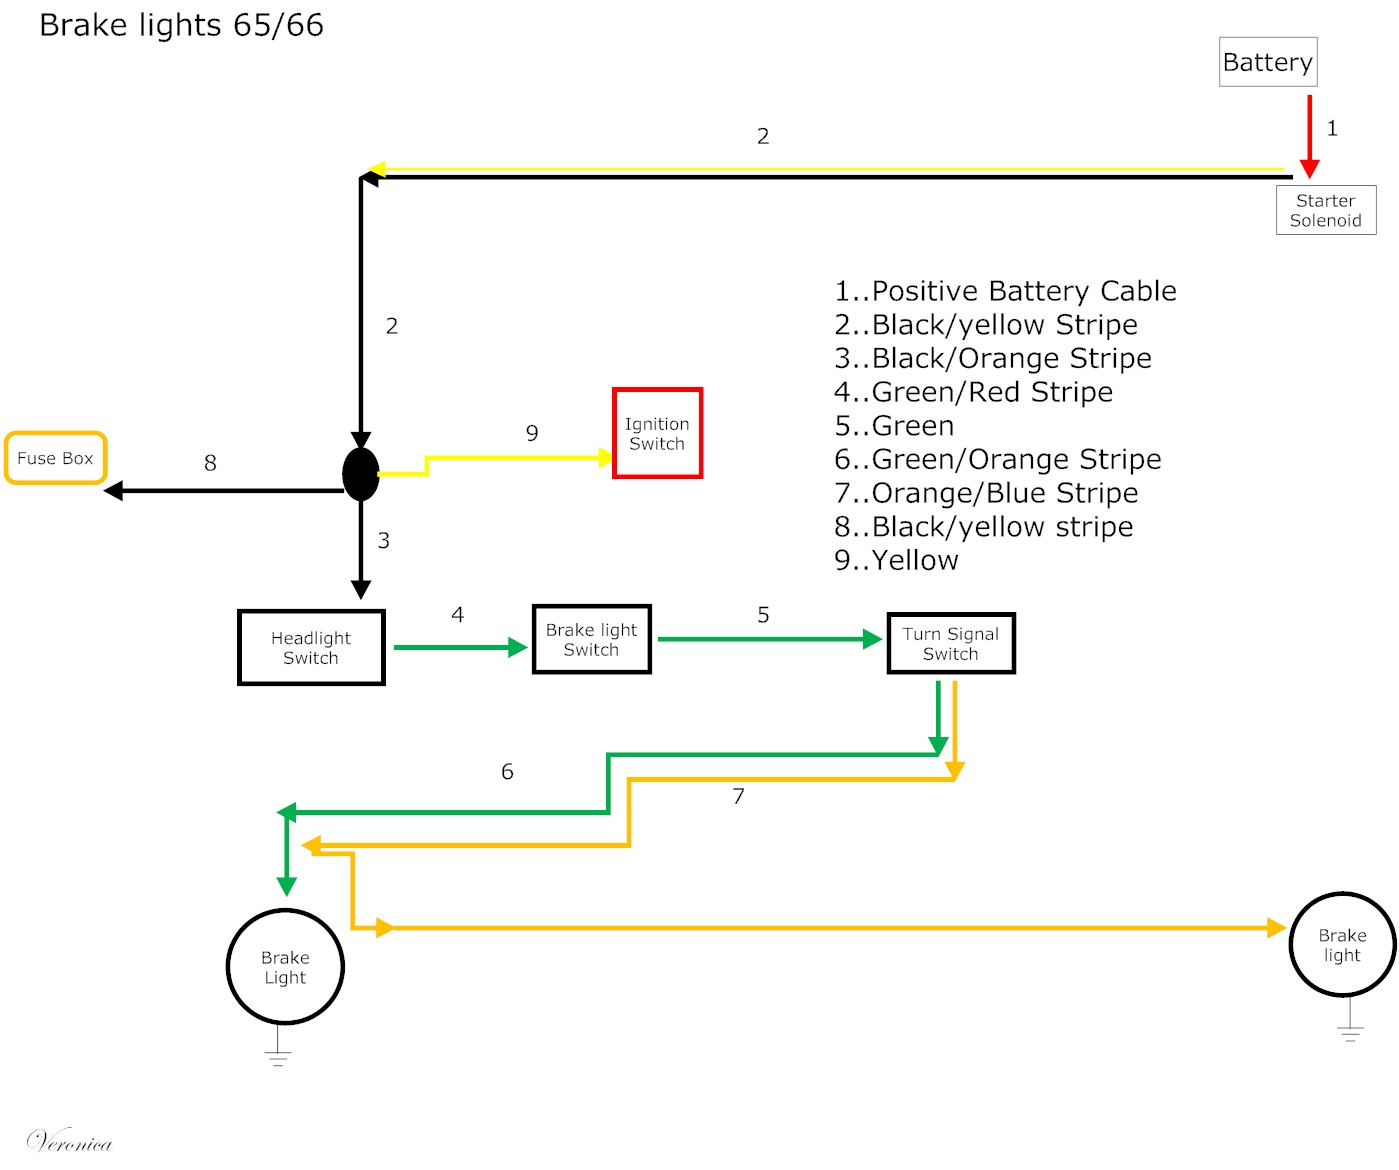 85 Mustang Turn Signal Switch Wiring Free Download Real Signals Limeworks Ts1342 Gt Diagram Get Image About